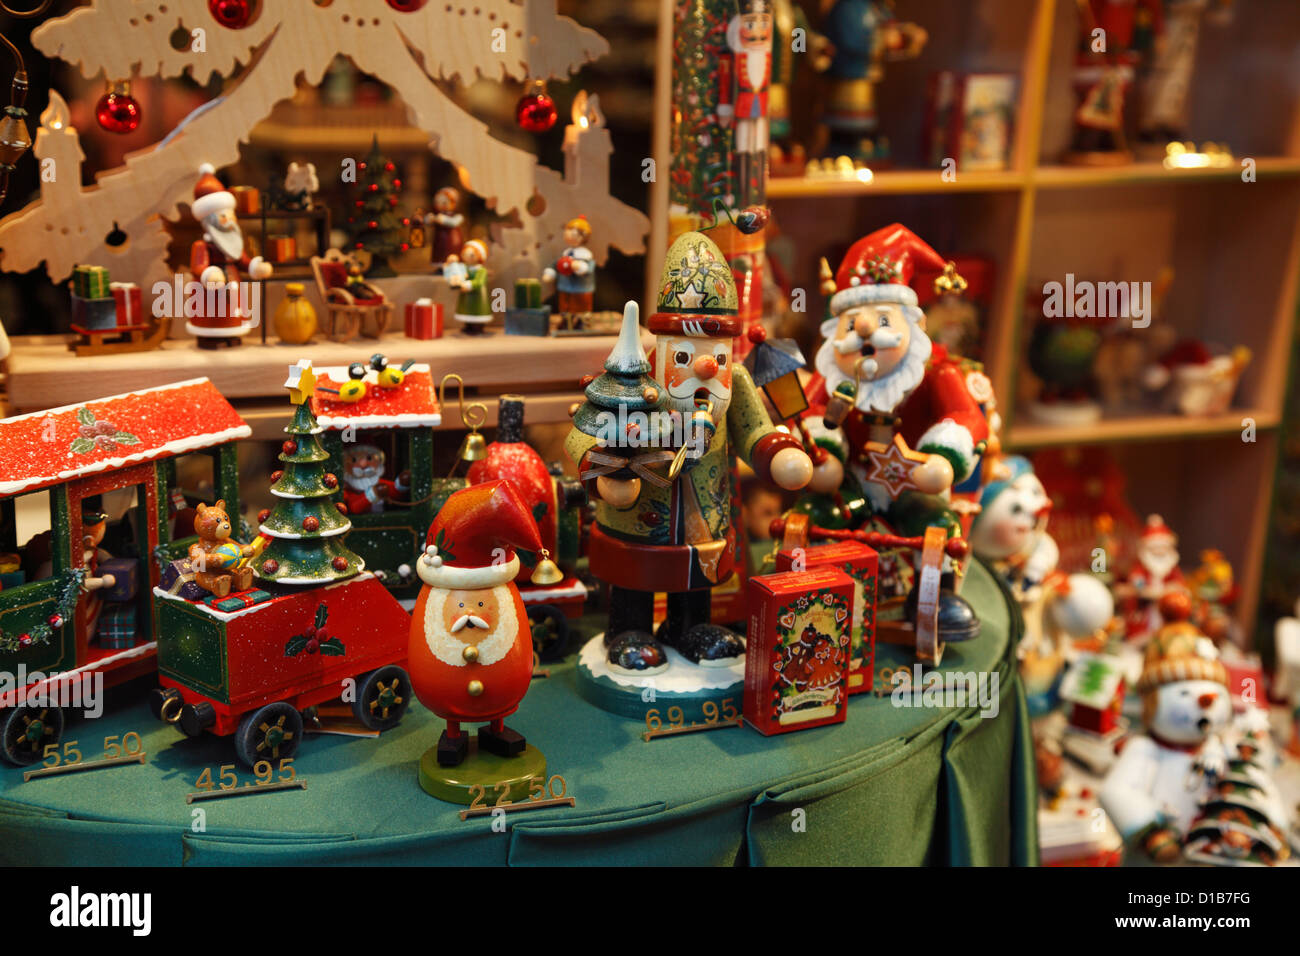 Christmas Toys And Decorations In A Store Window Display